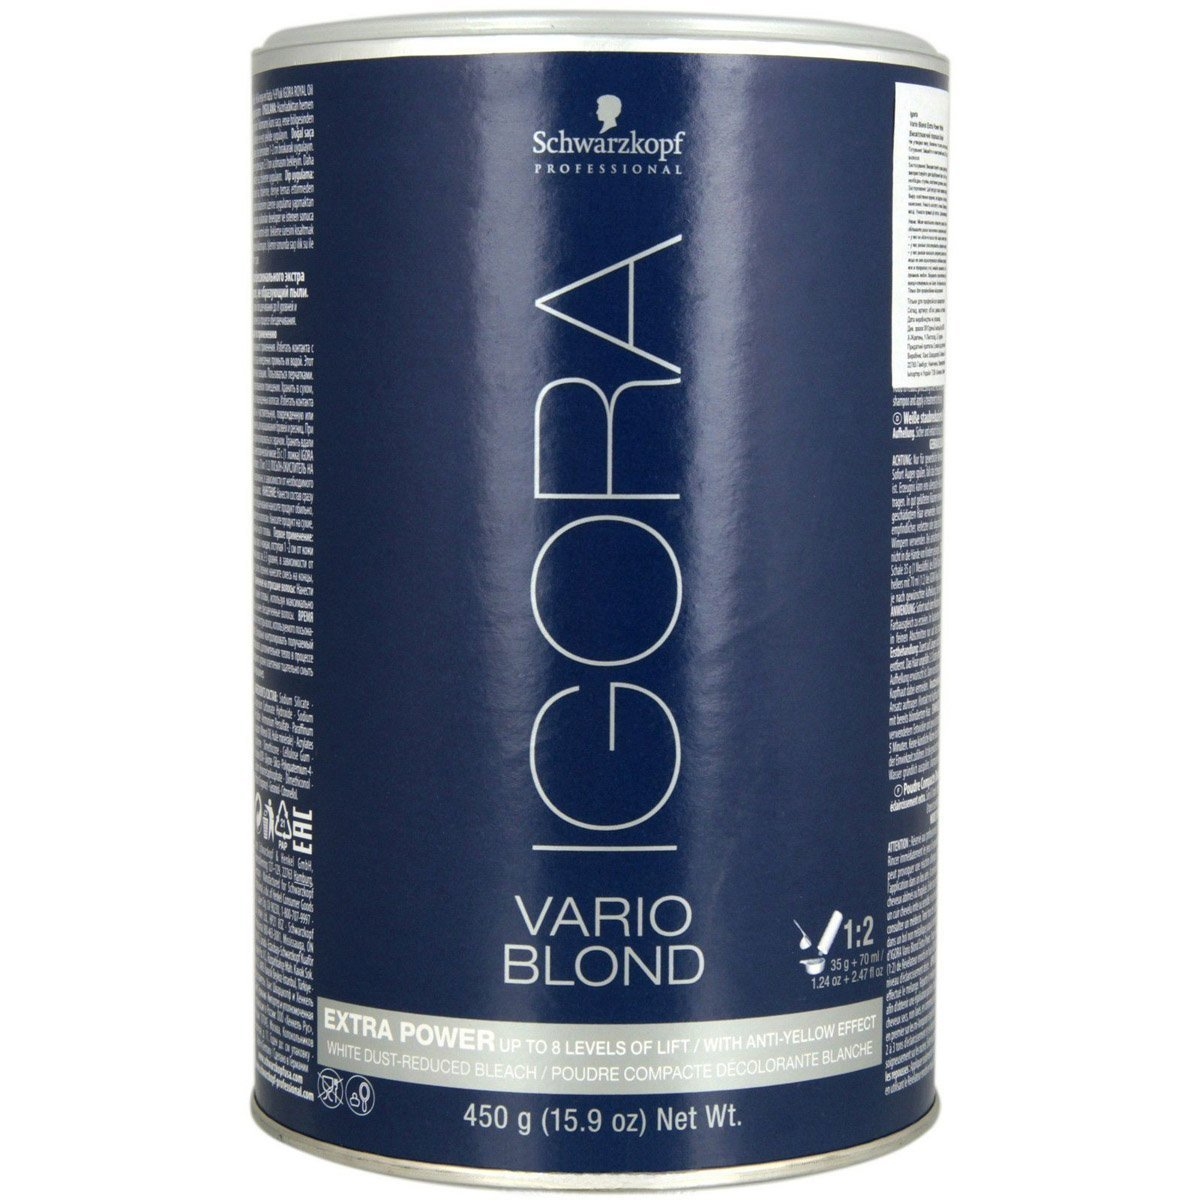 Schwarzkopf Professional Igora Vario Blond Extra Power, 15.9 Ounce